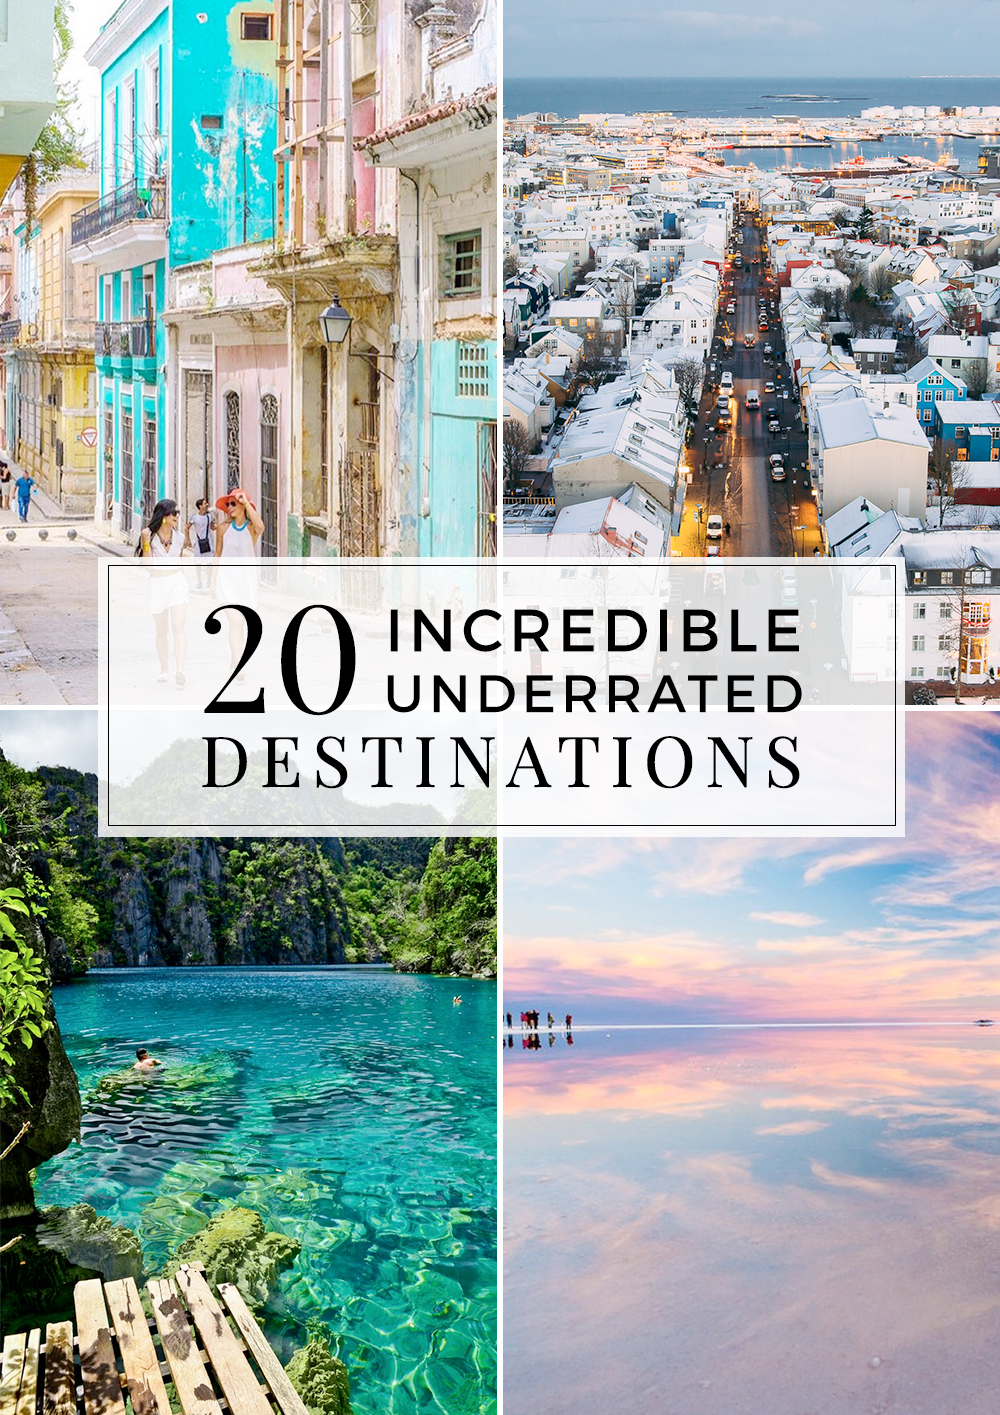 Step away from the overpopulated destinations and discover some of the most underrated places in the world.